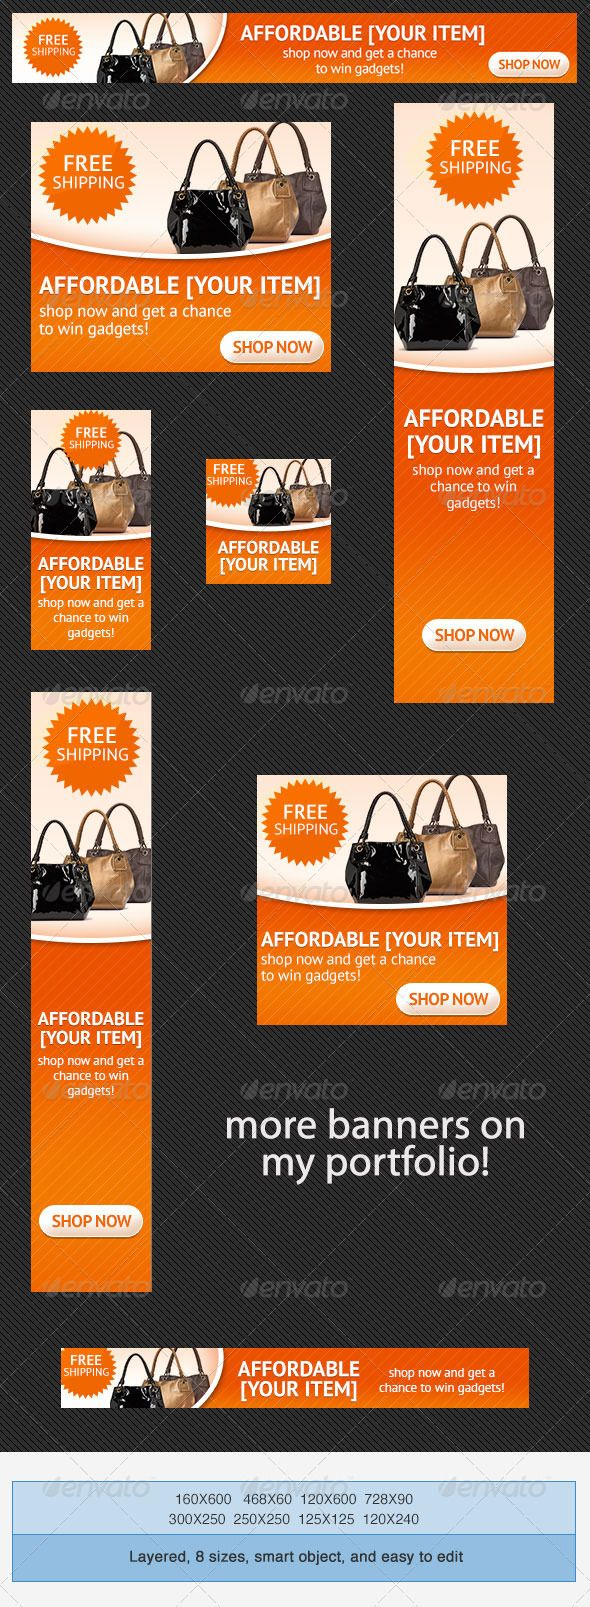 Design google banner ads - Online Shopping Psd Banner Ad Template